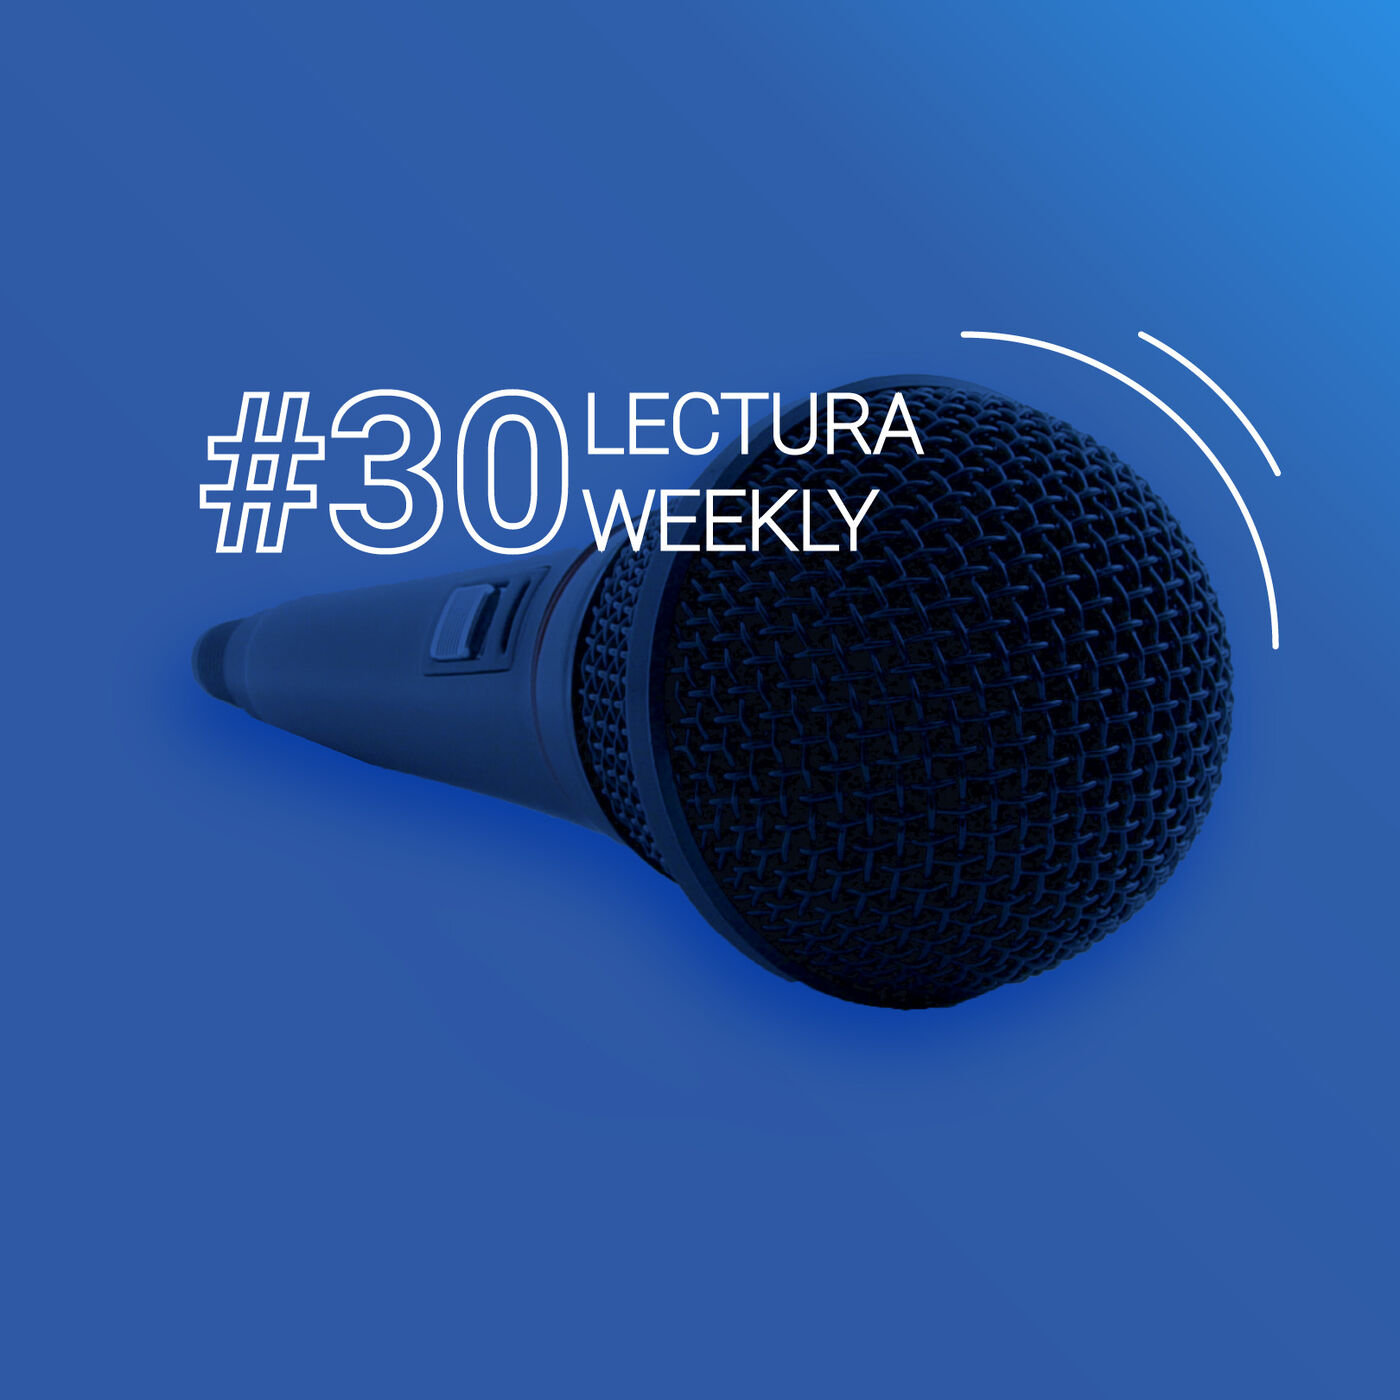 Lectura Weekly Podcasts: Week 30